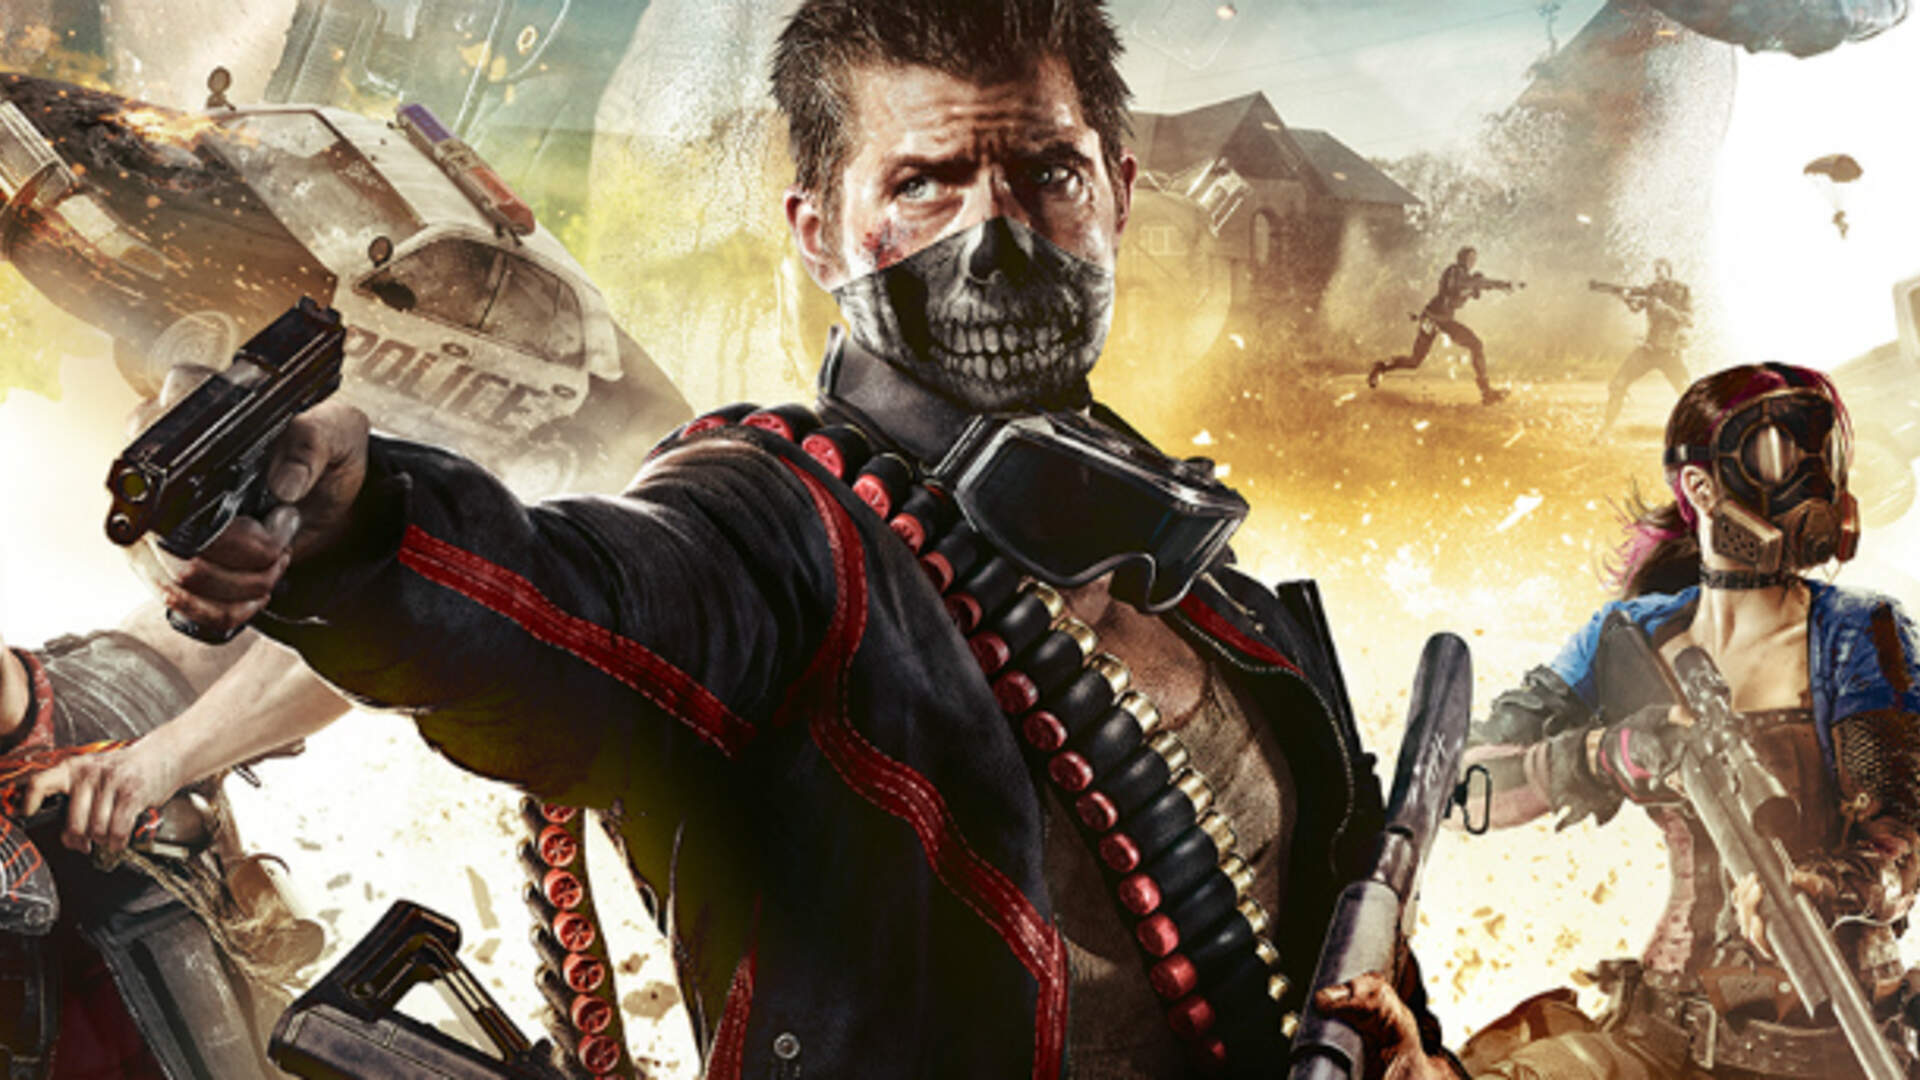 H1Z1 Finally Leaves Steam Early Access With Launch Update and New Mode